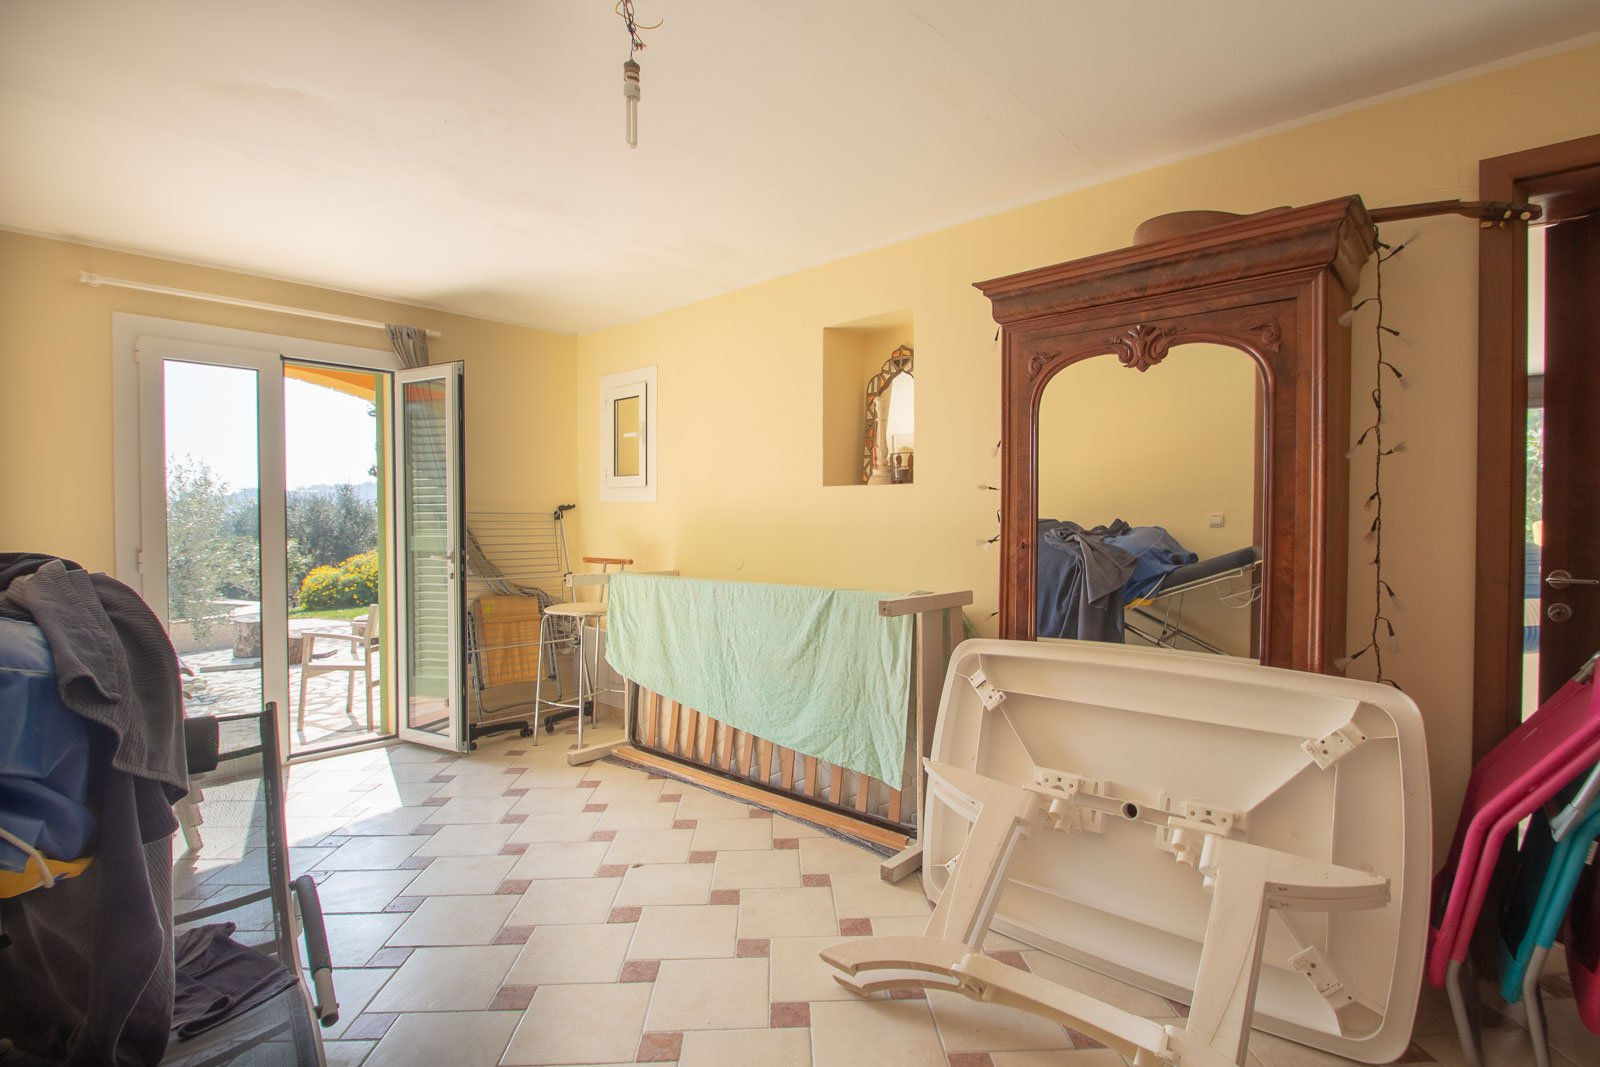 Villa Azure vote, Vence, sea view, quiet garden, swimming pool, 250m with 8 bedrooms, possibility 2 families